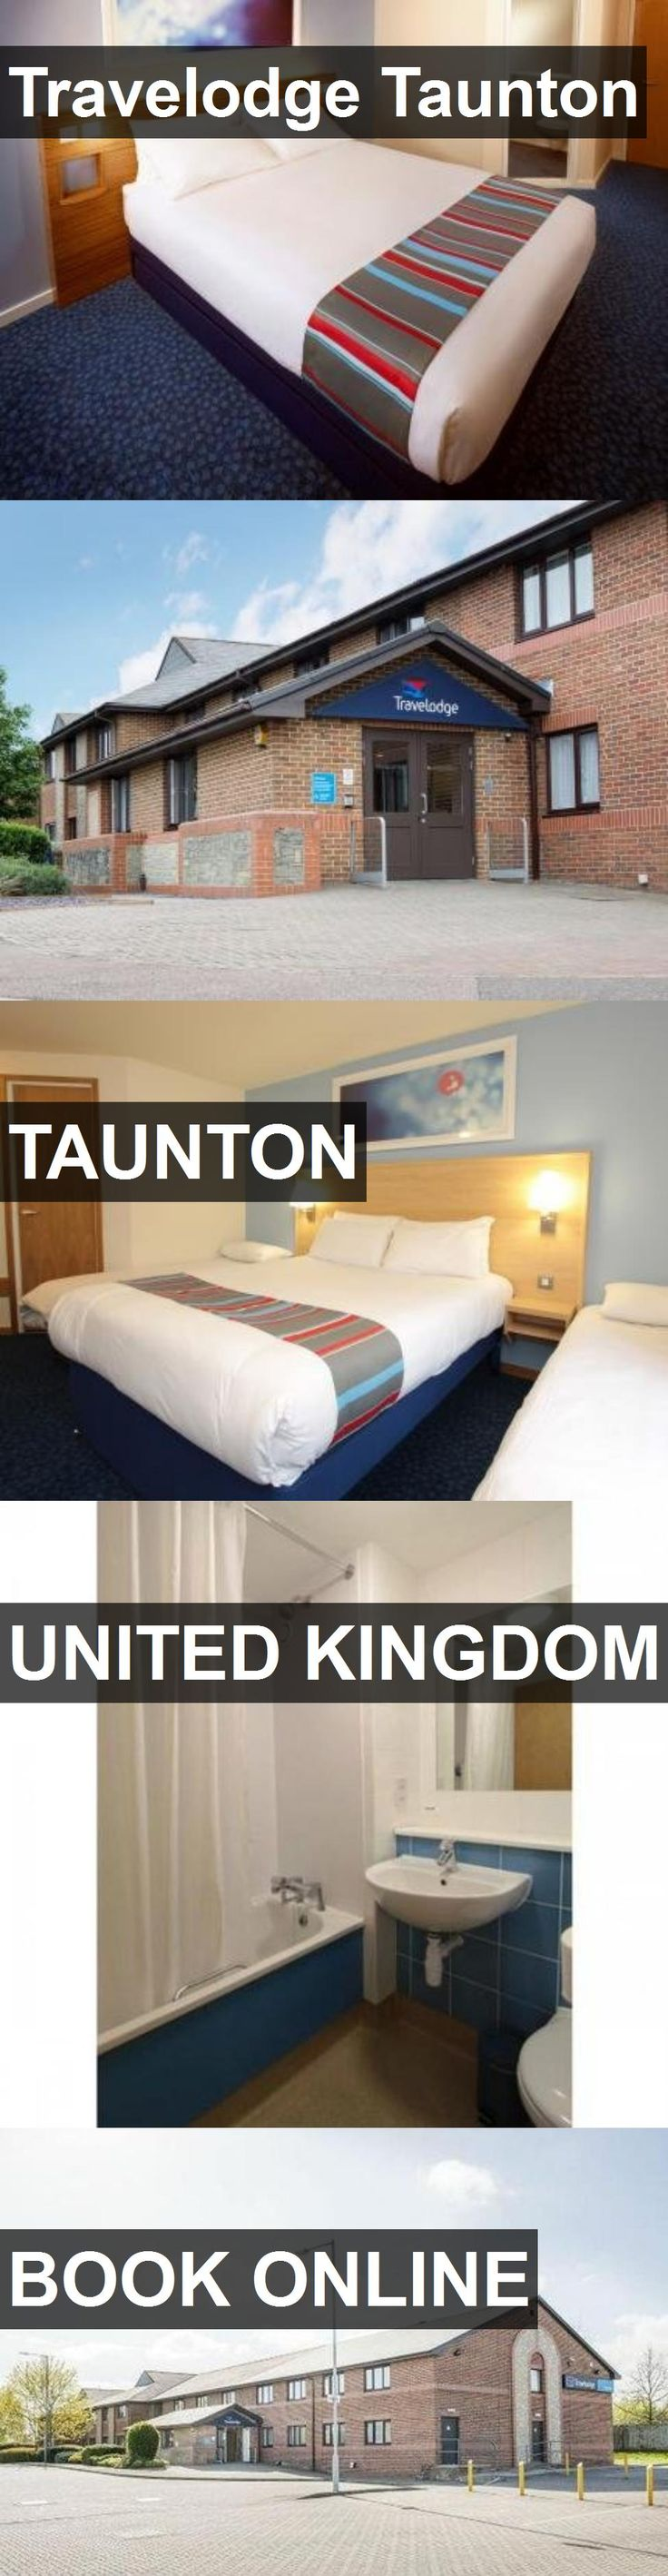 Hotel Travelodge Taunton in Taunton, United Kingdom. For more information, photos, reviews and best prices please follow the link. #UnitedKingdom #Taunton #travel #vacation #hotel